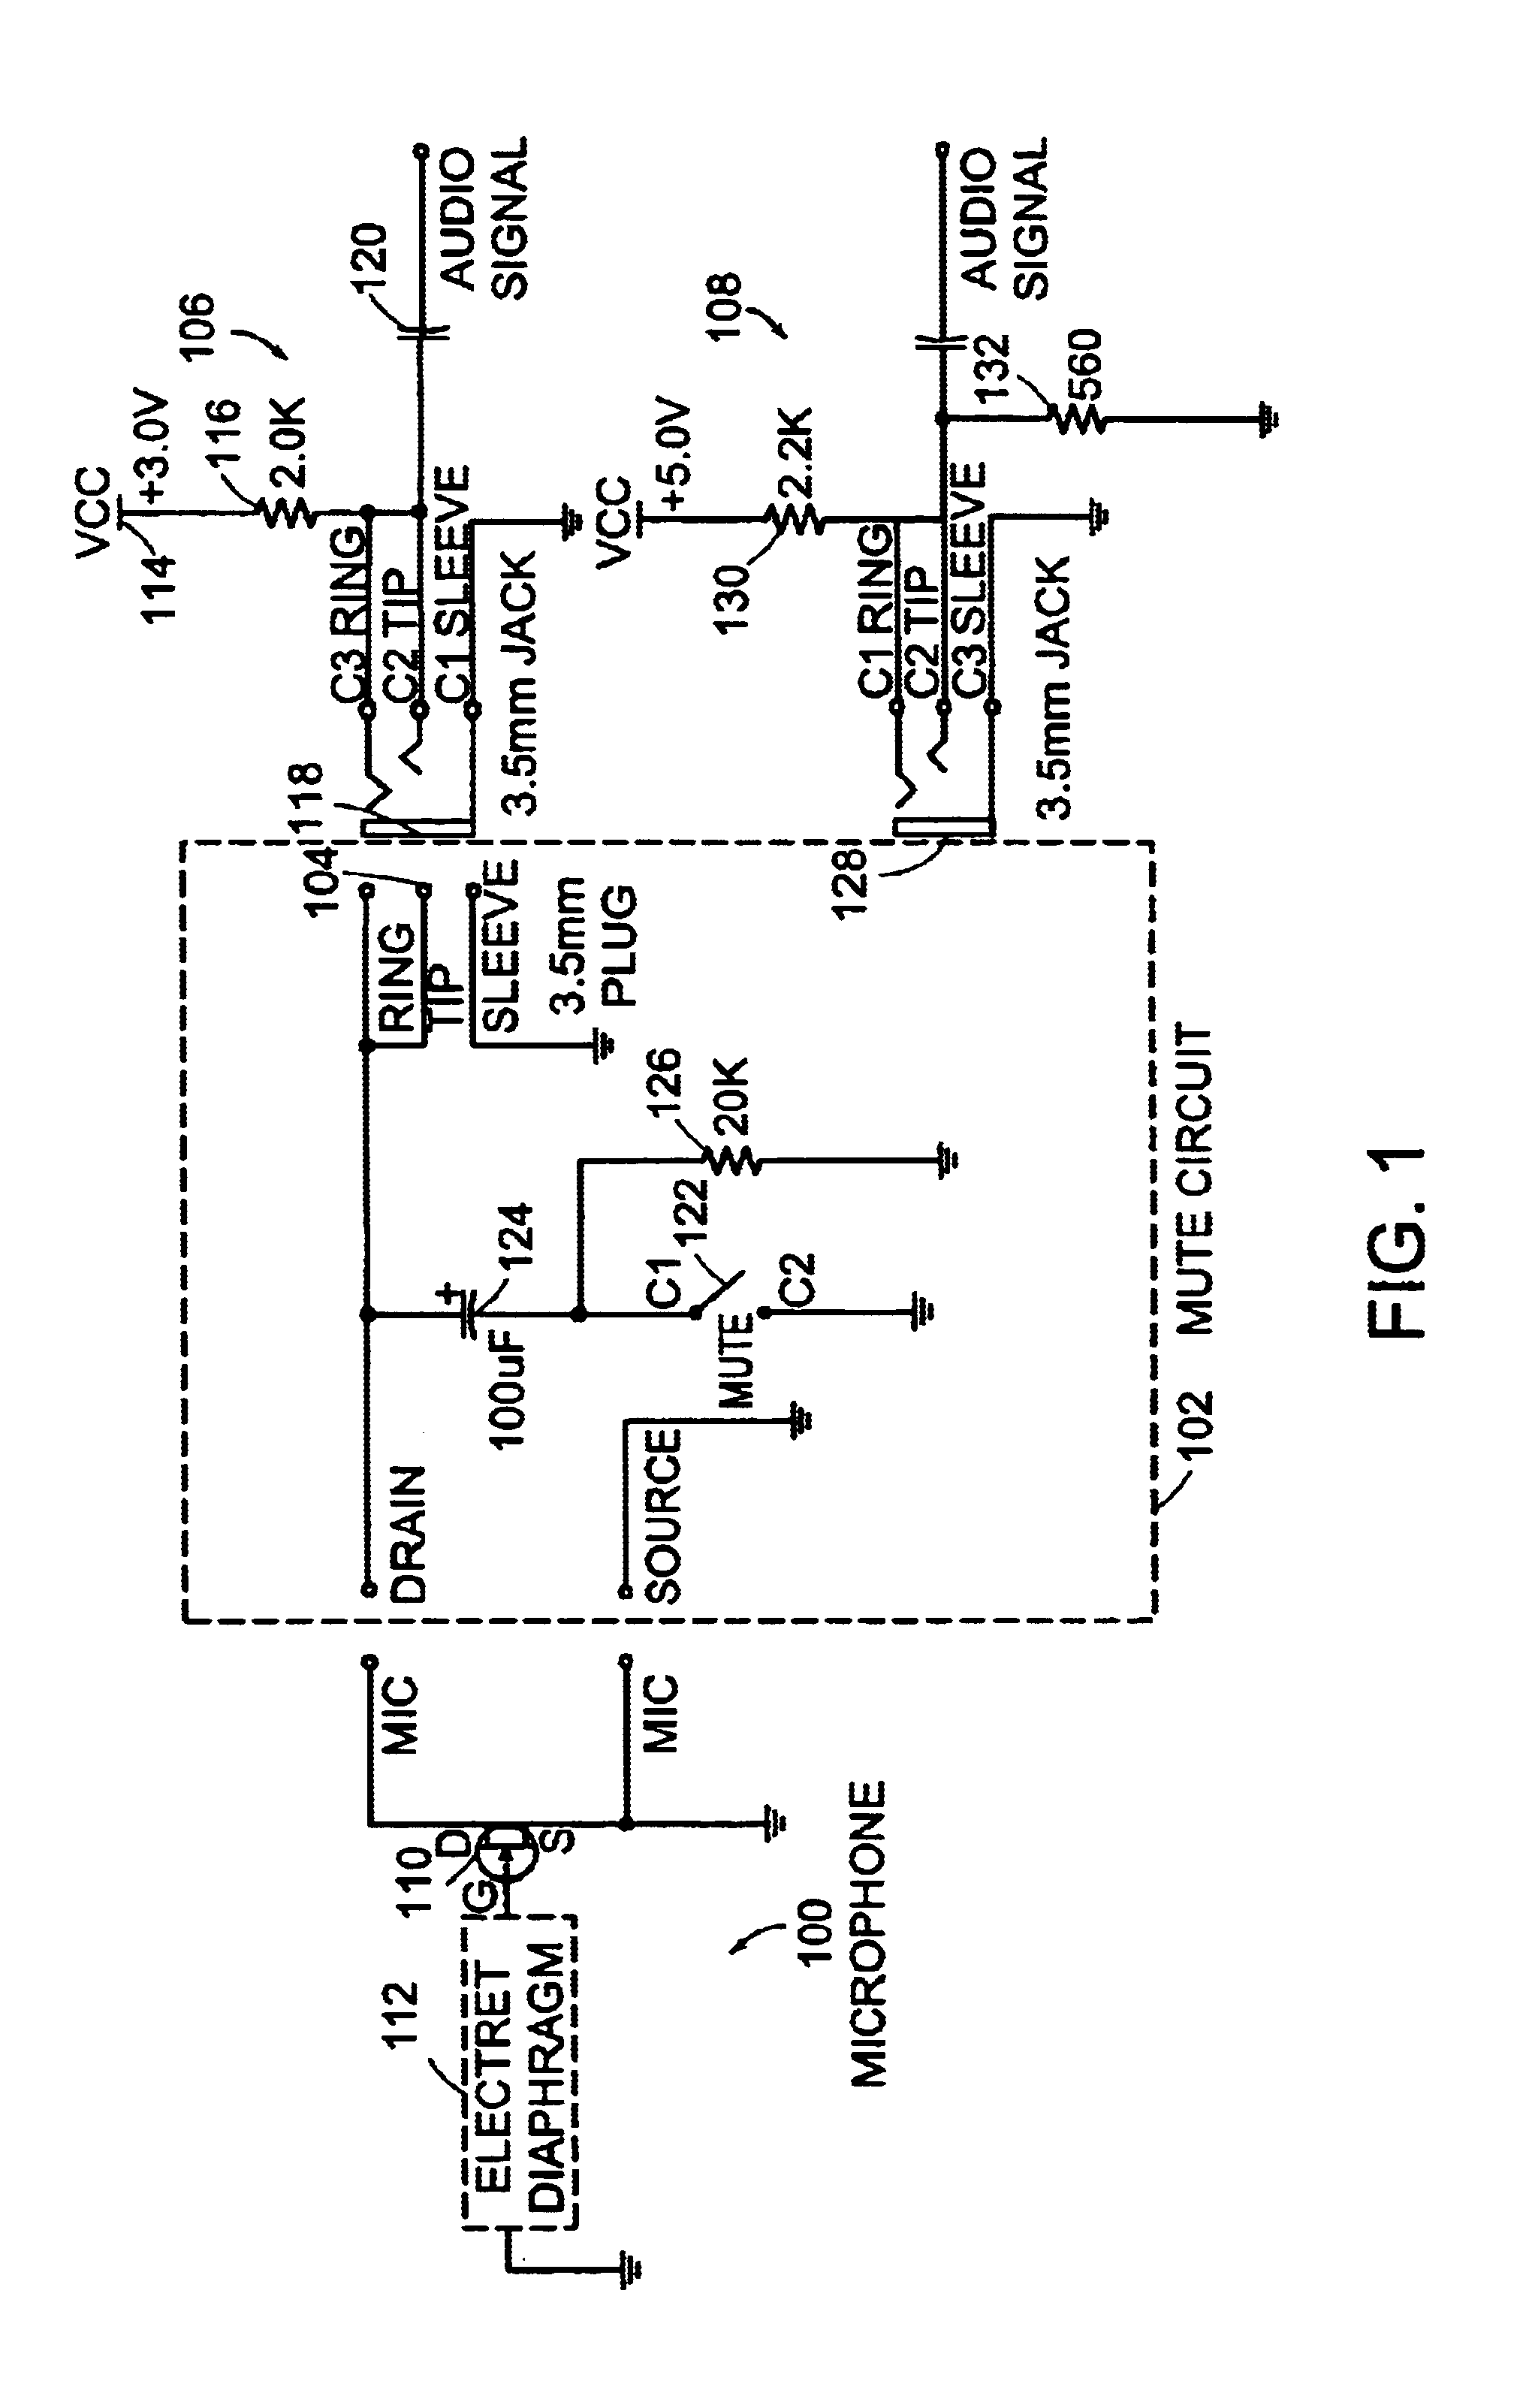 Patent Us6681020 Microphone Circuit With Mute And Keep Alive Noise Pink Generator Diagram Electronic Circuits Drawing